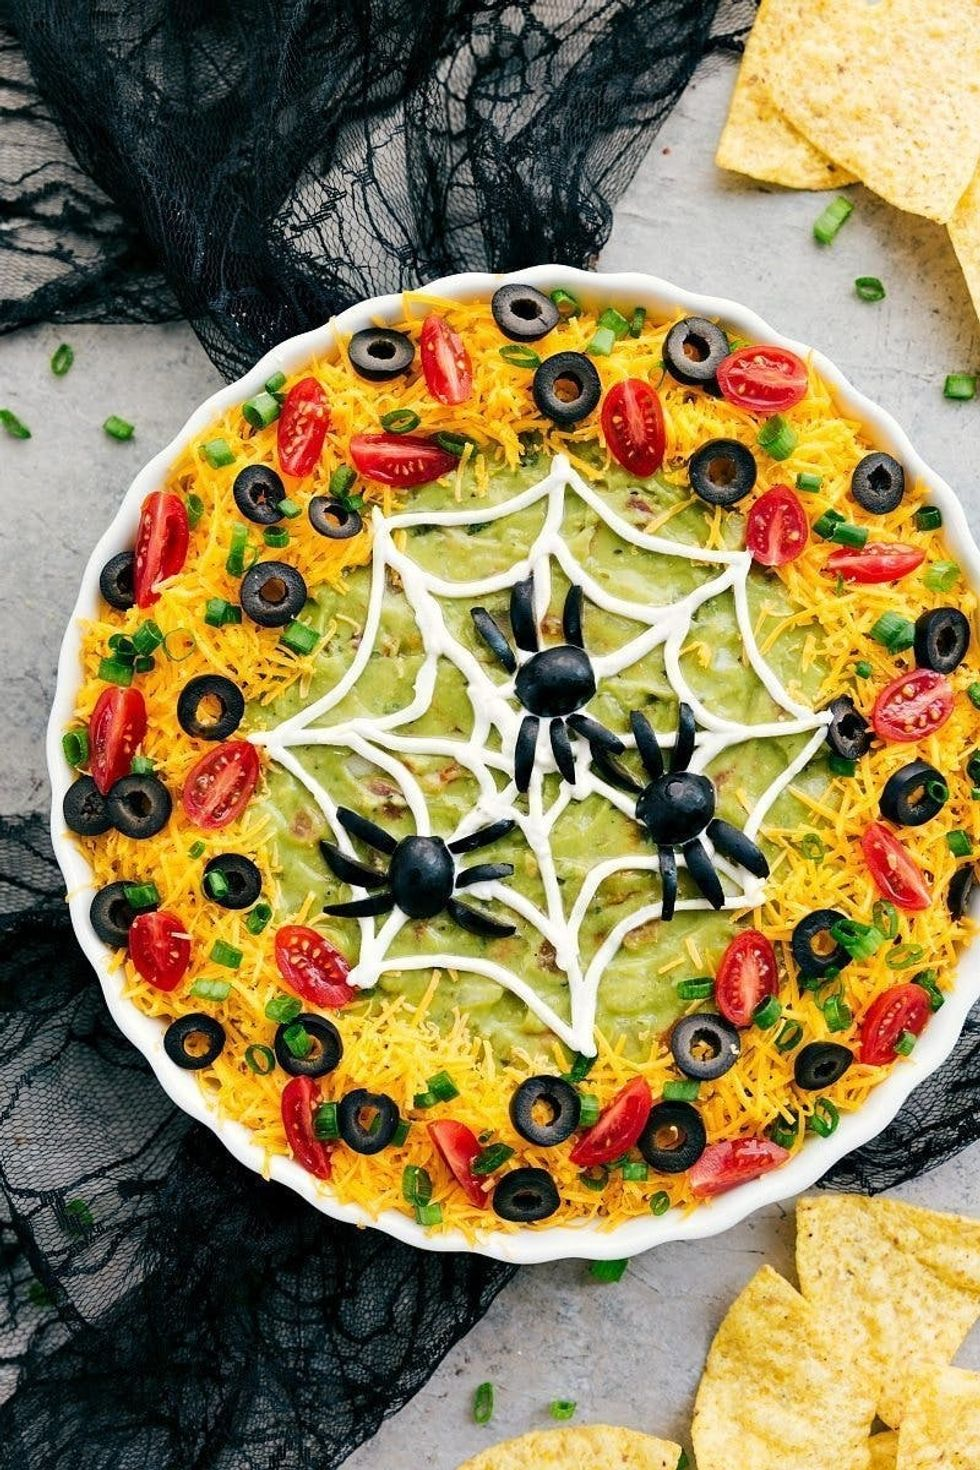 16 Easy Scary Halloween Appetizer Recipes for Your Potluck - Brit + Co